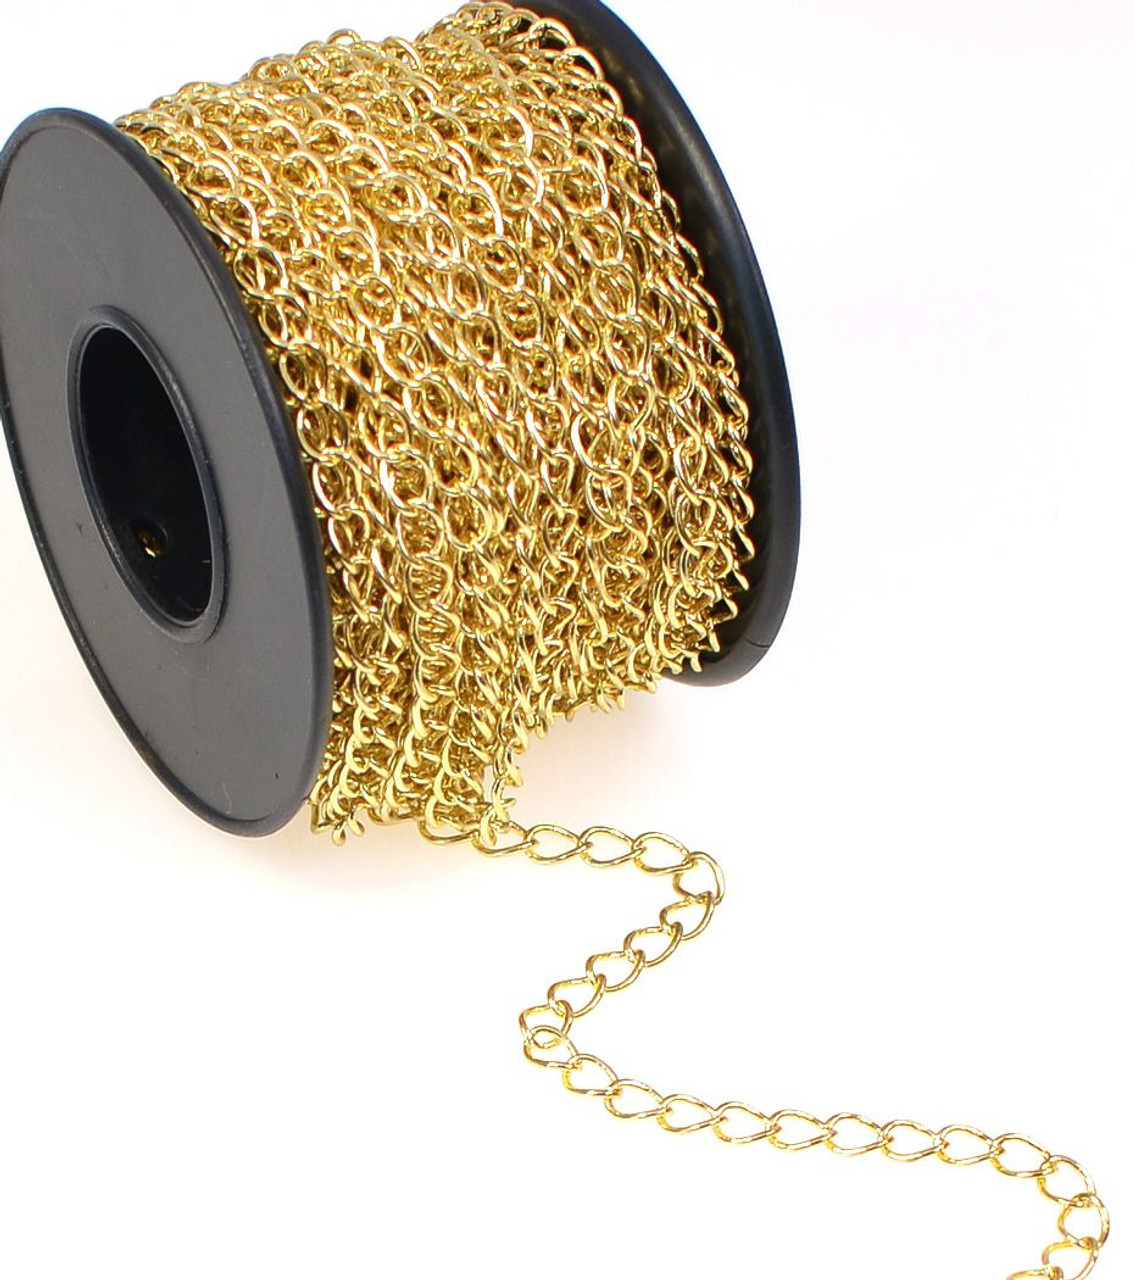 32 Foot Spool Gold Plated Brass Bulk Curb Chain with 2.8x4mm Links